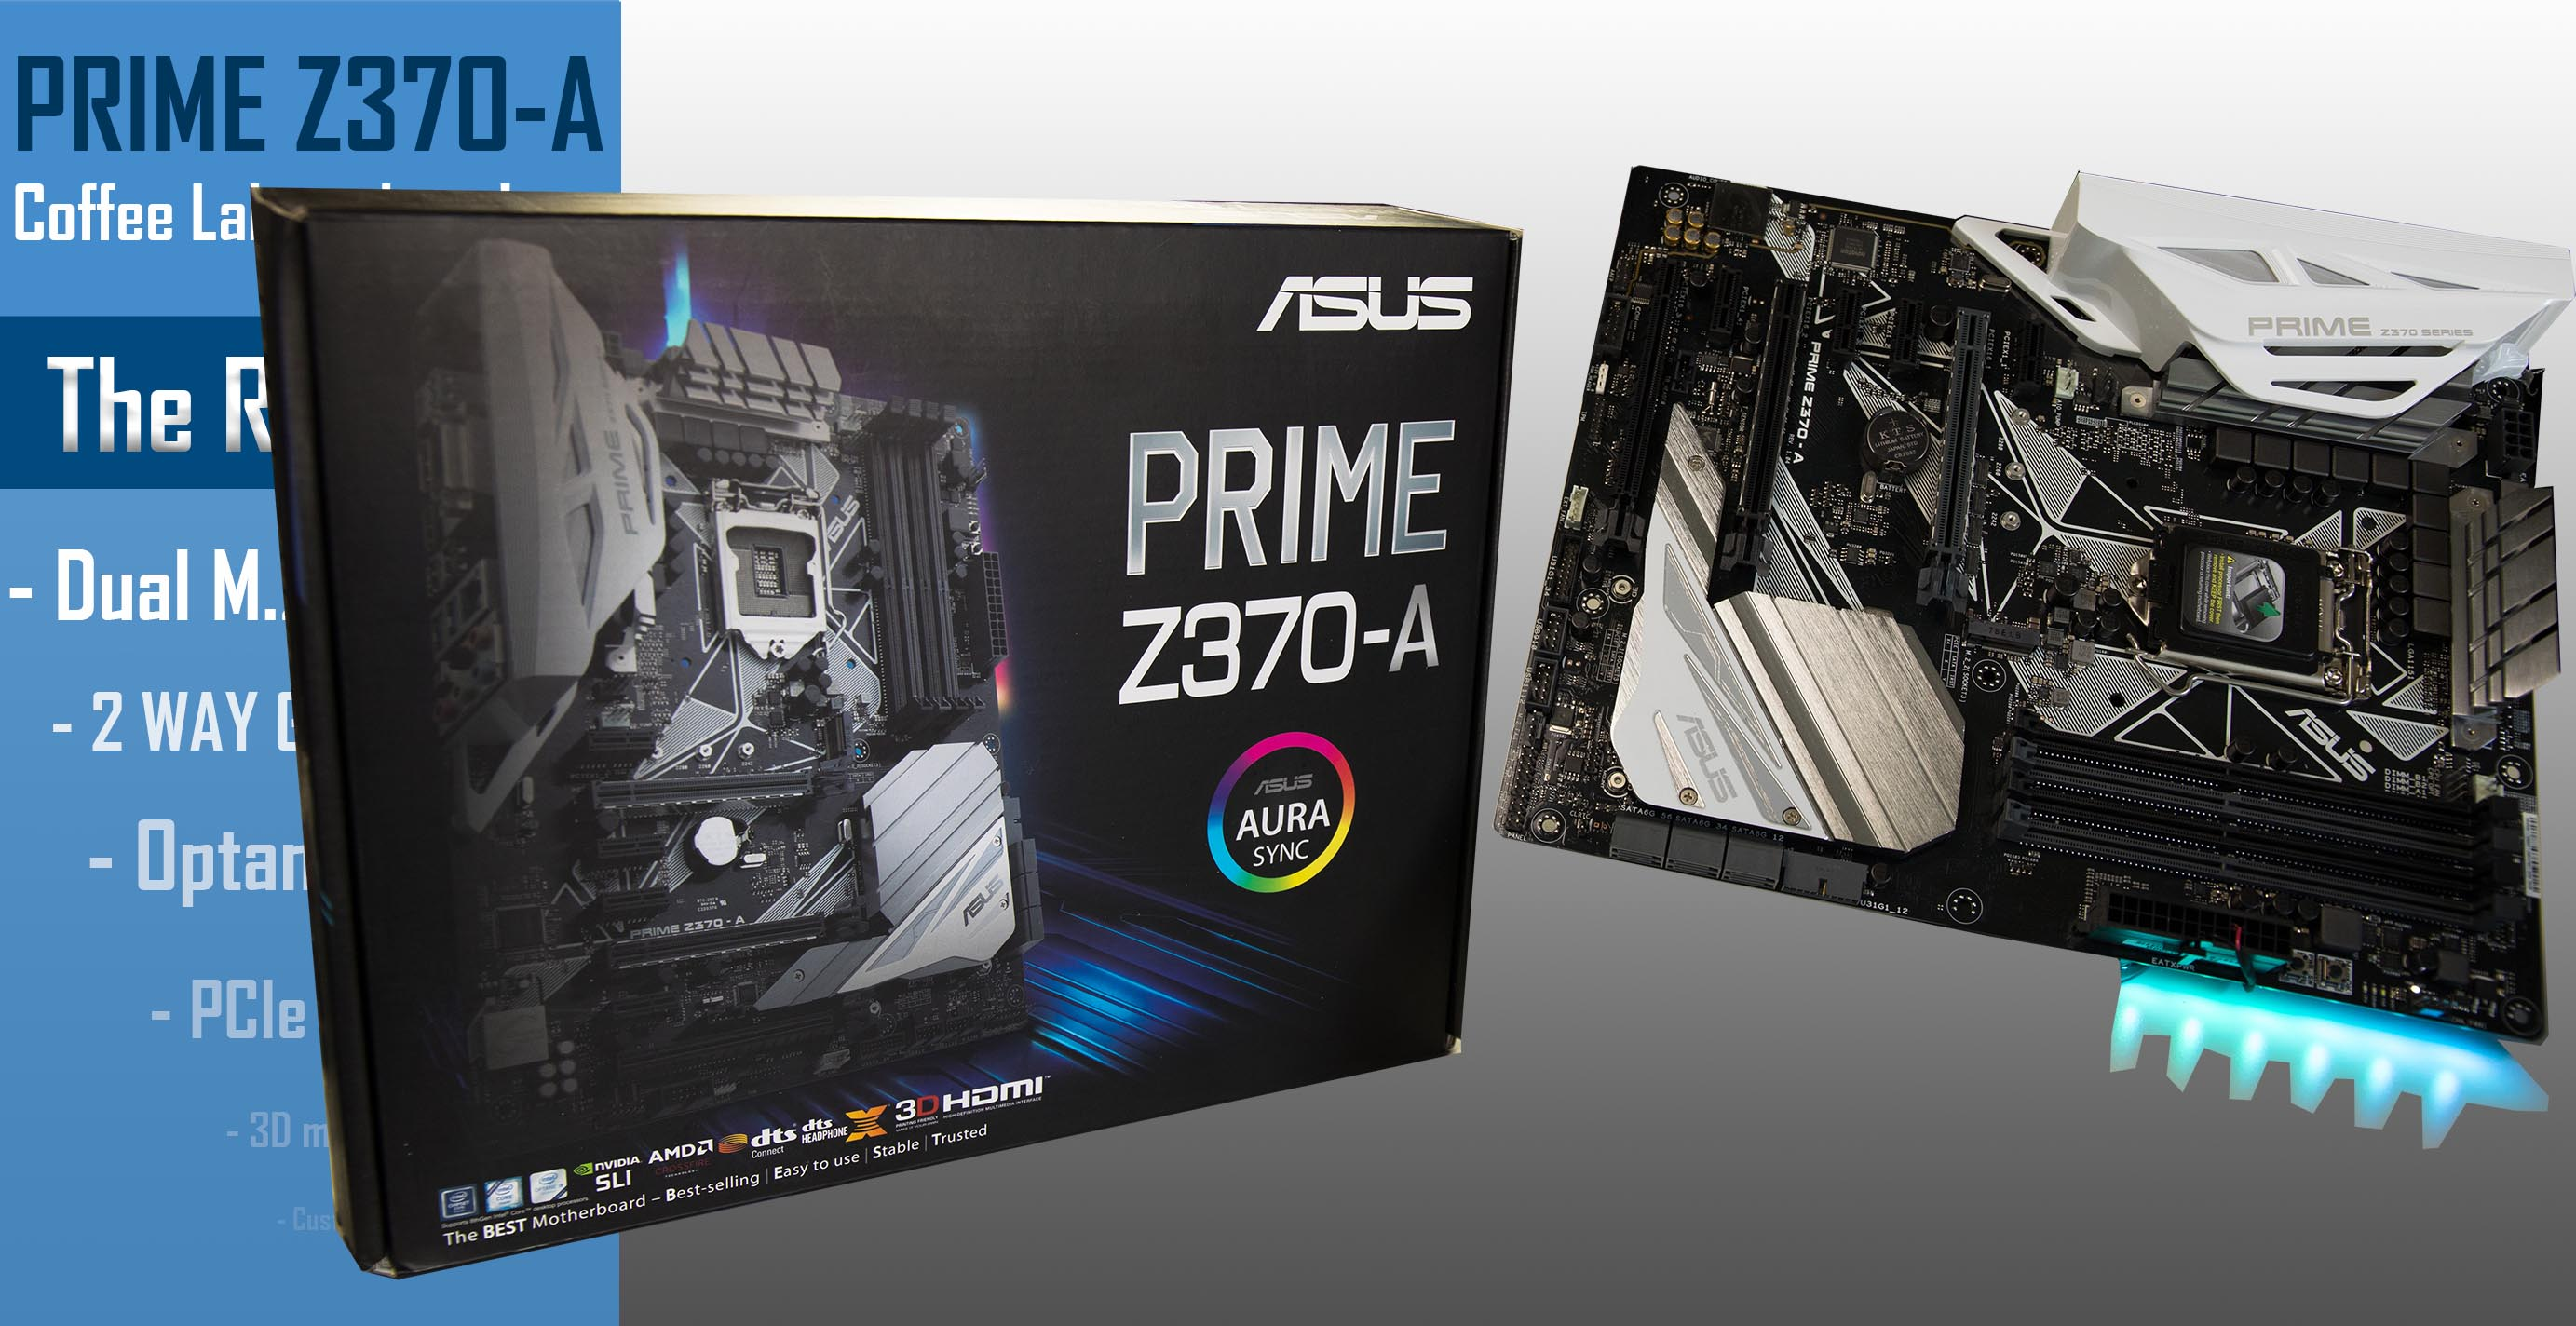 Prime z370 a hands on review laurent 39 s choice - Home design shows on amazon prime ...